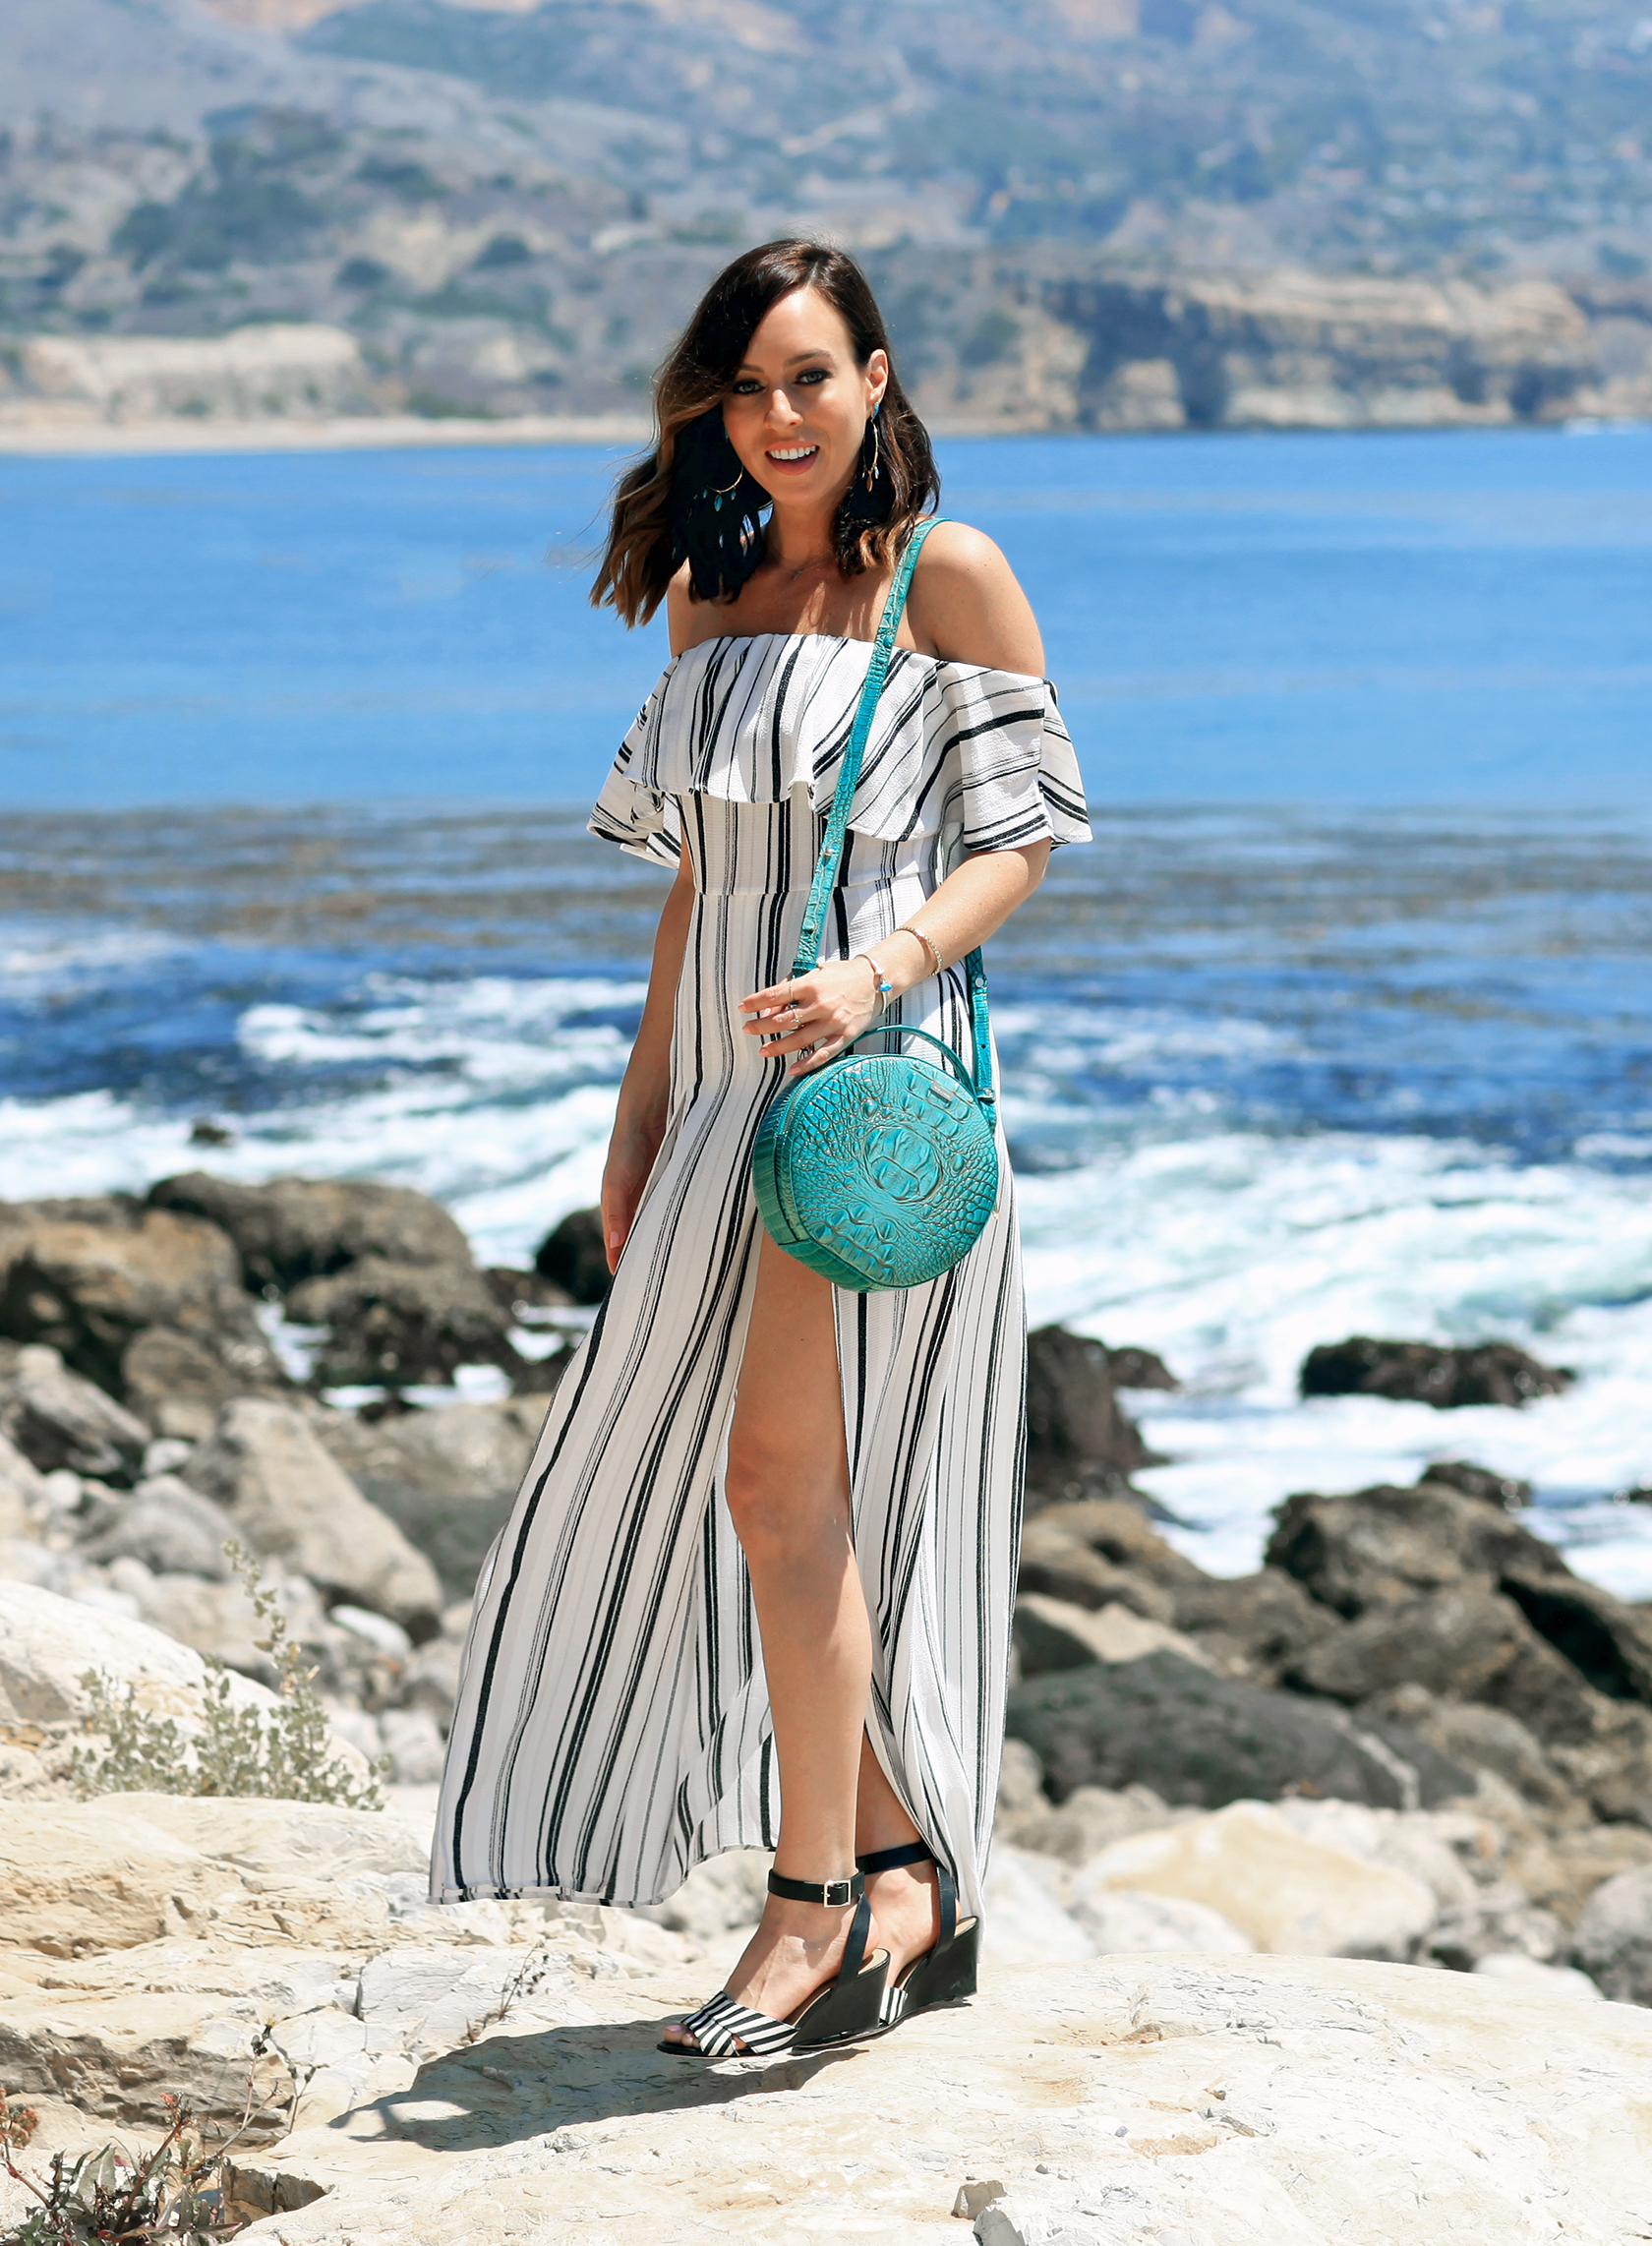 Sydne Style wears Brahmin lane bag in turquoise for summer outfit ideas